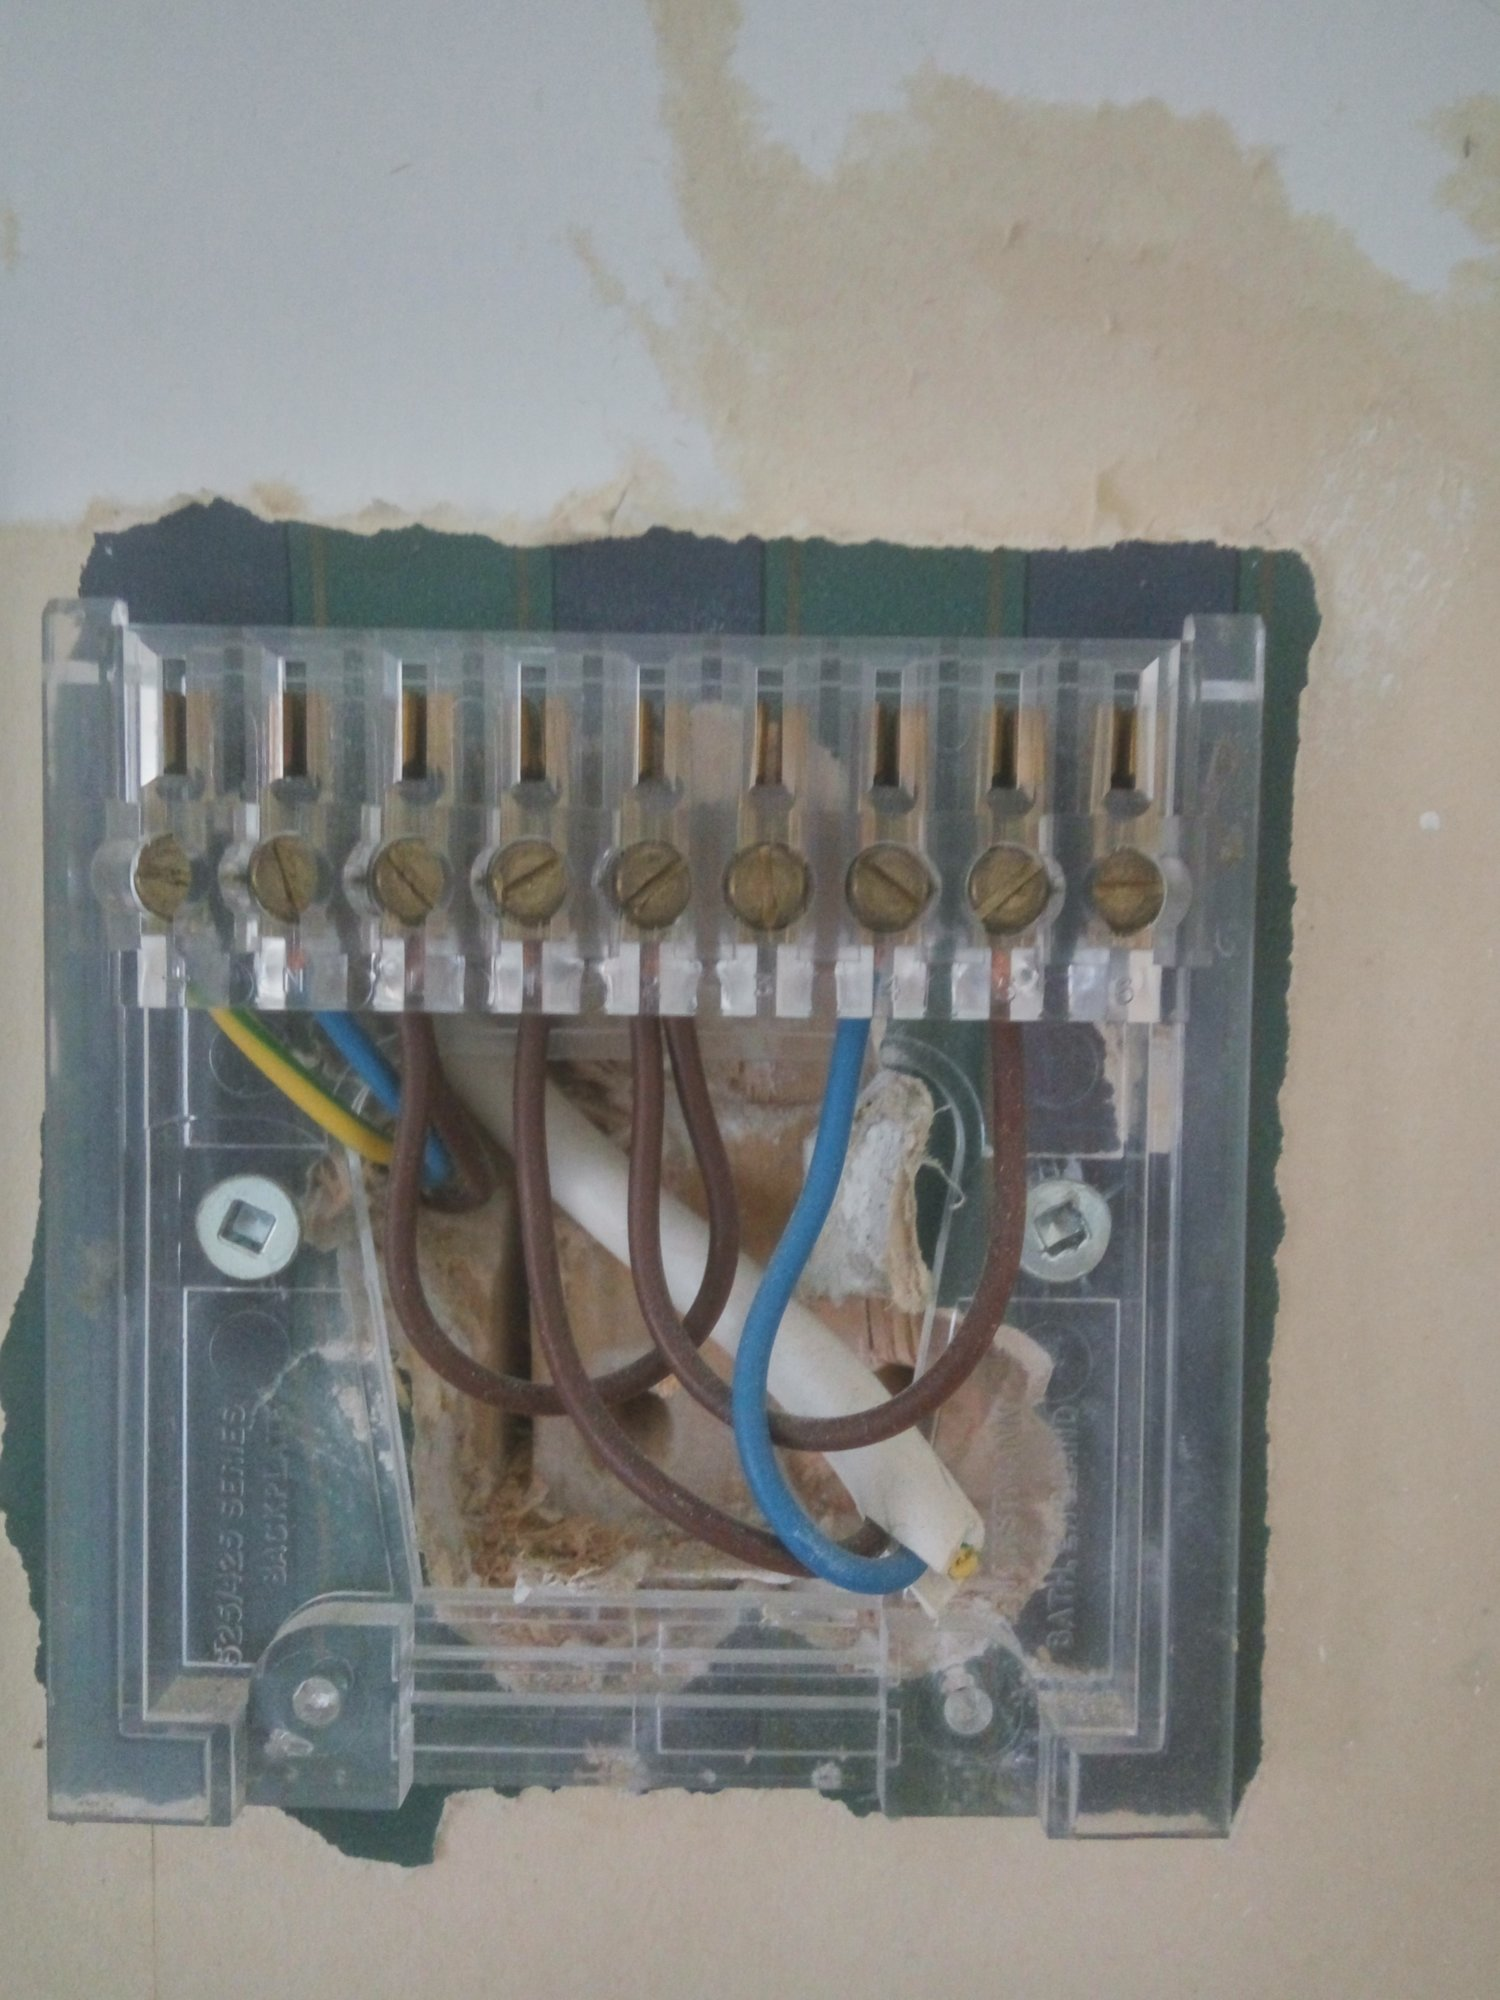 Can Wiring Diagram